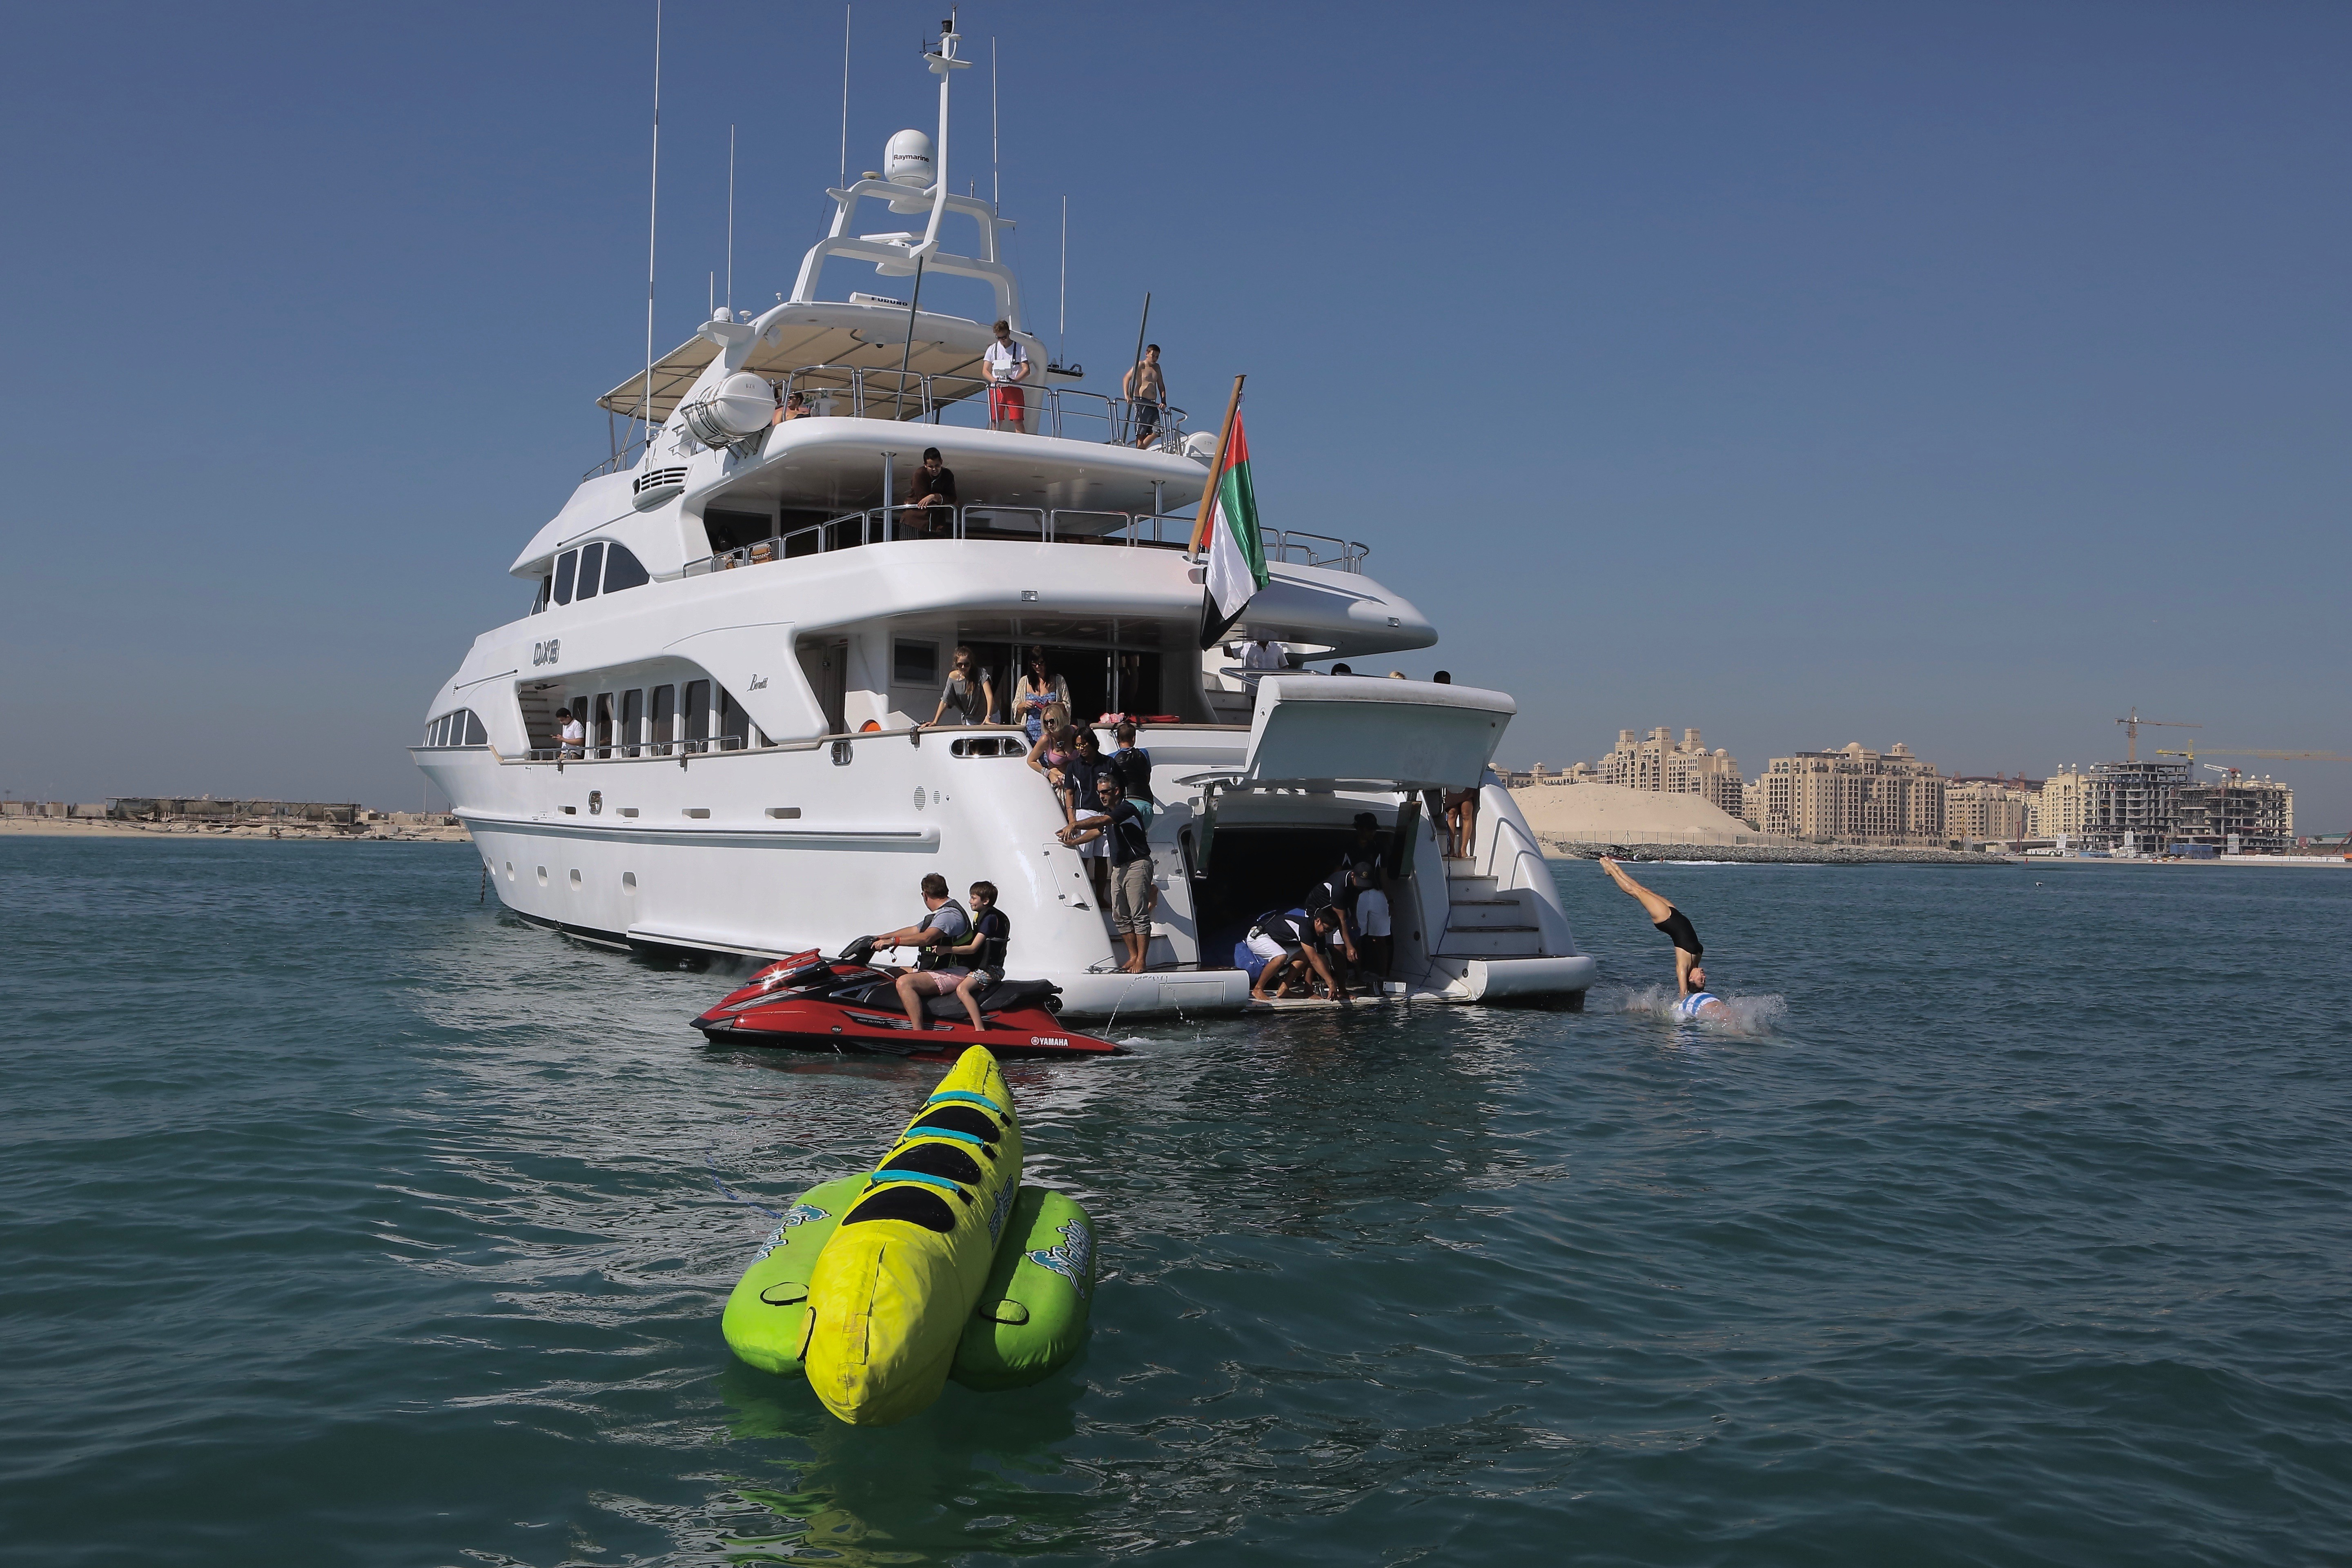 The 35m Yacht DXB